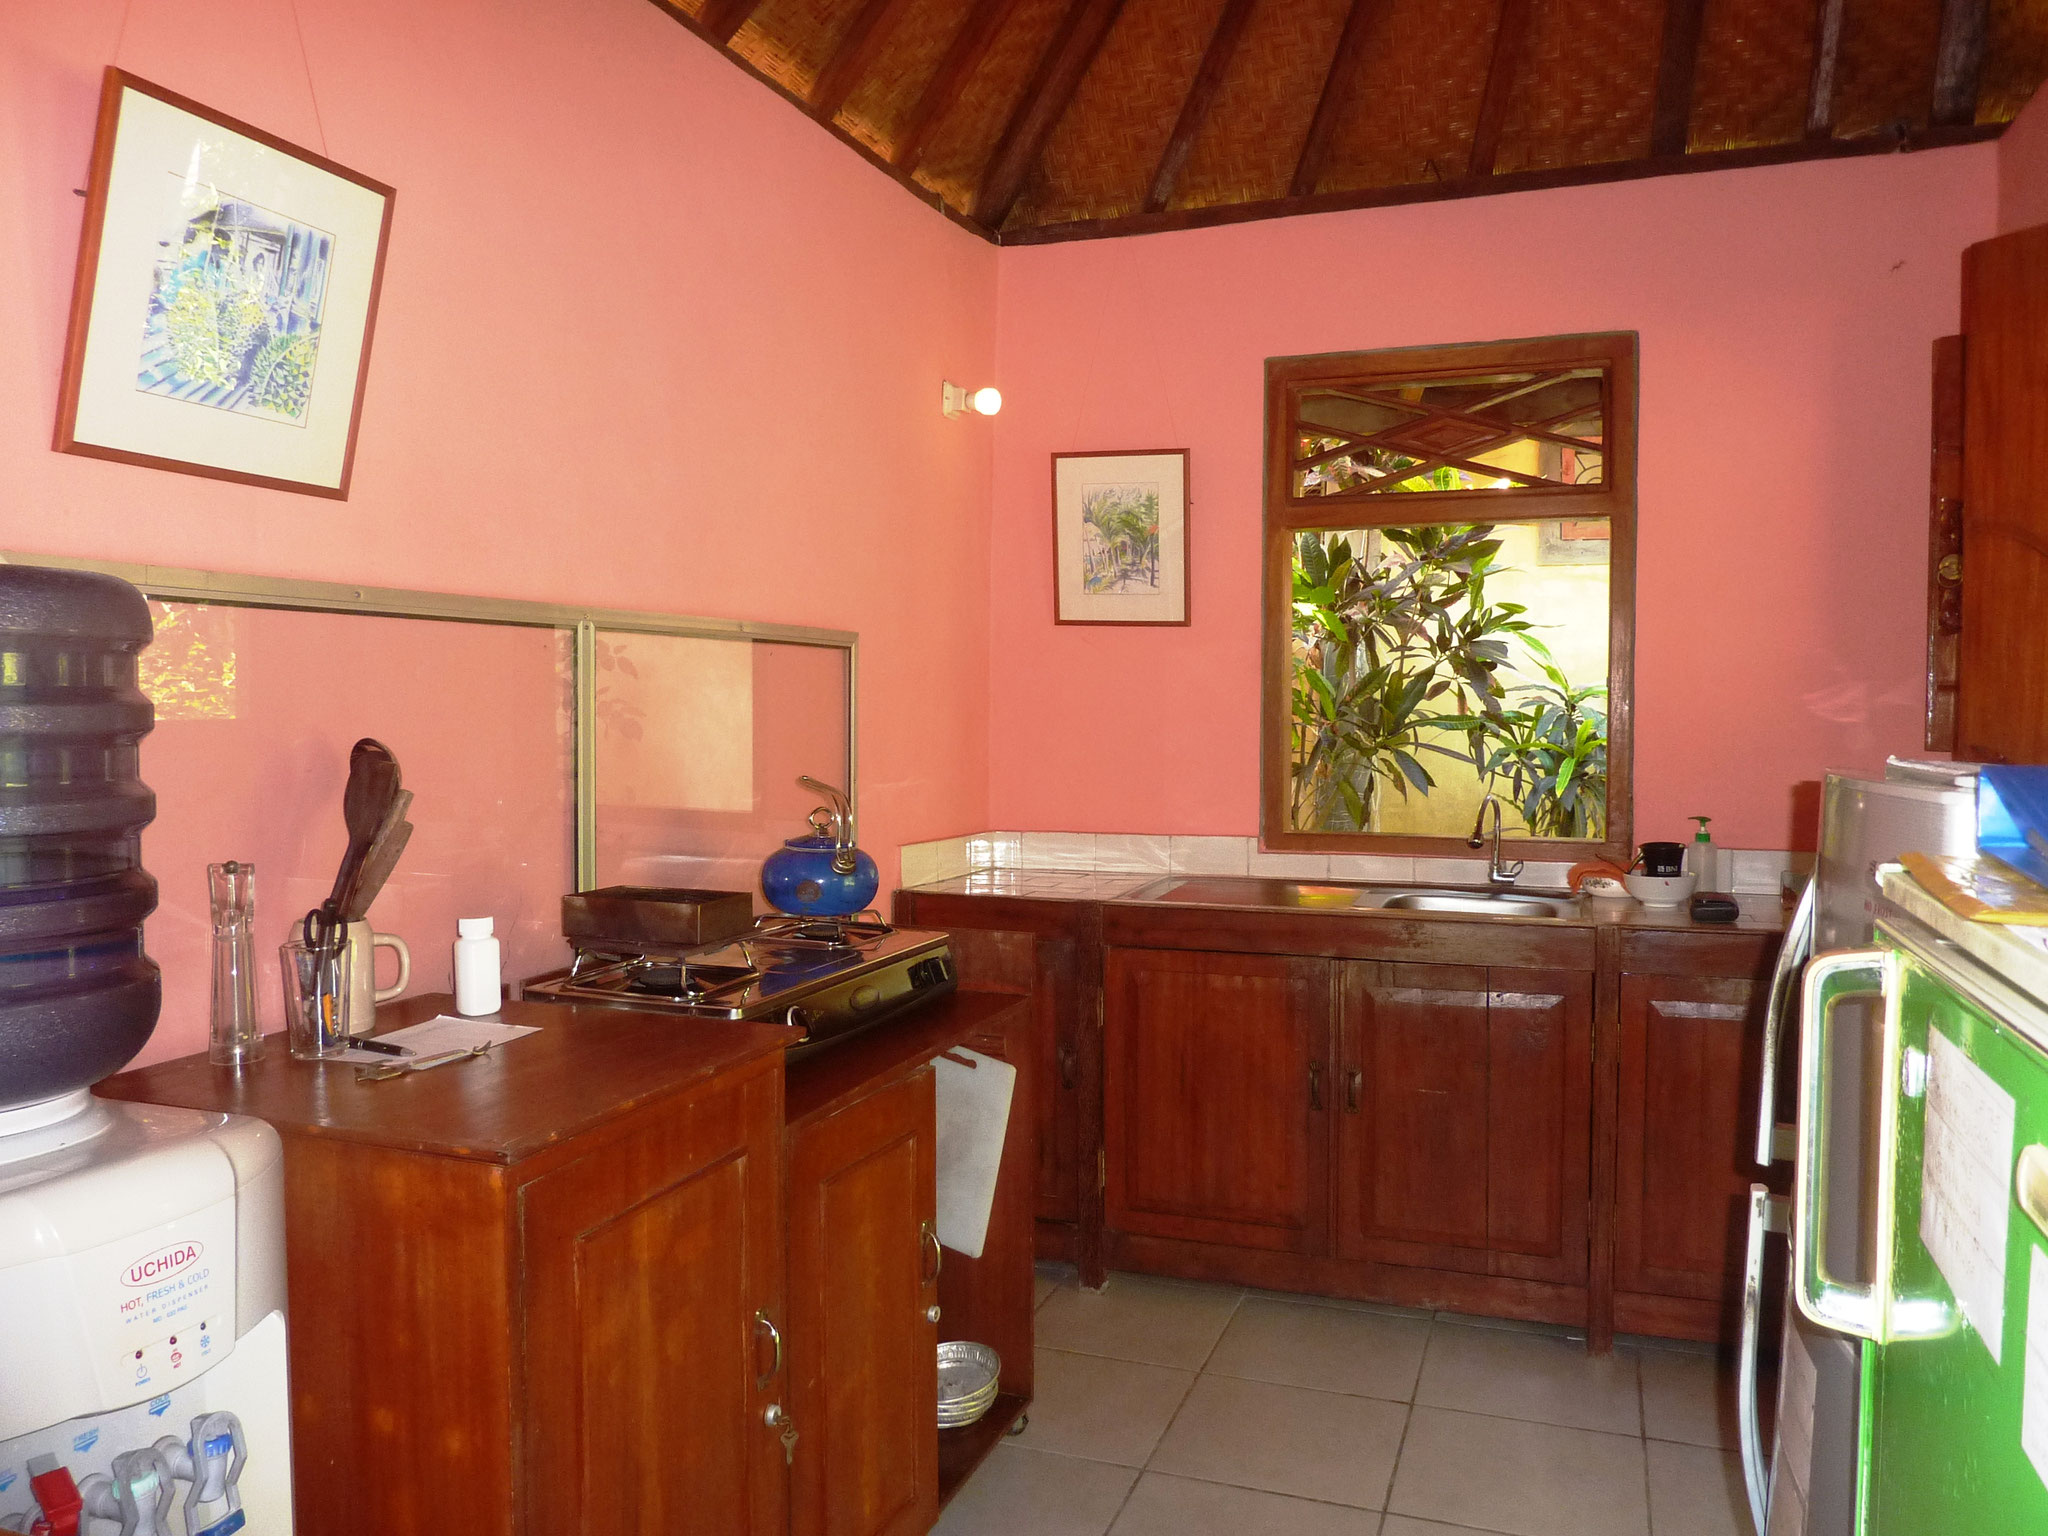 both bungalows share this kitchen